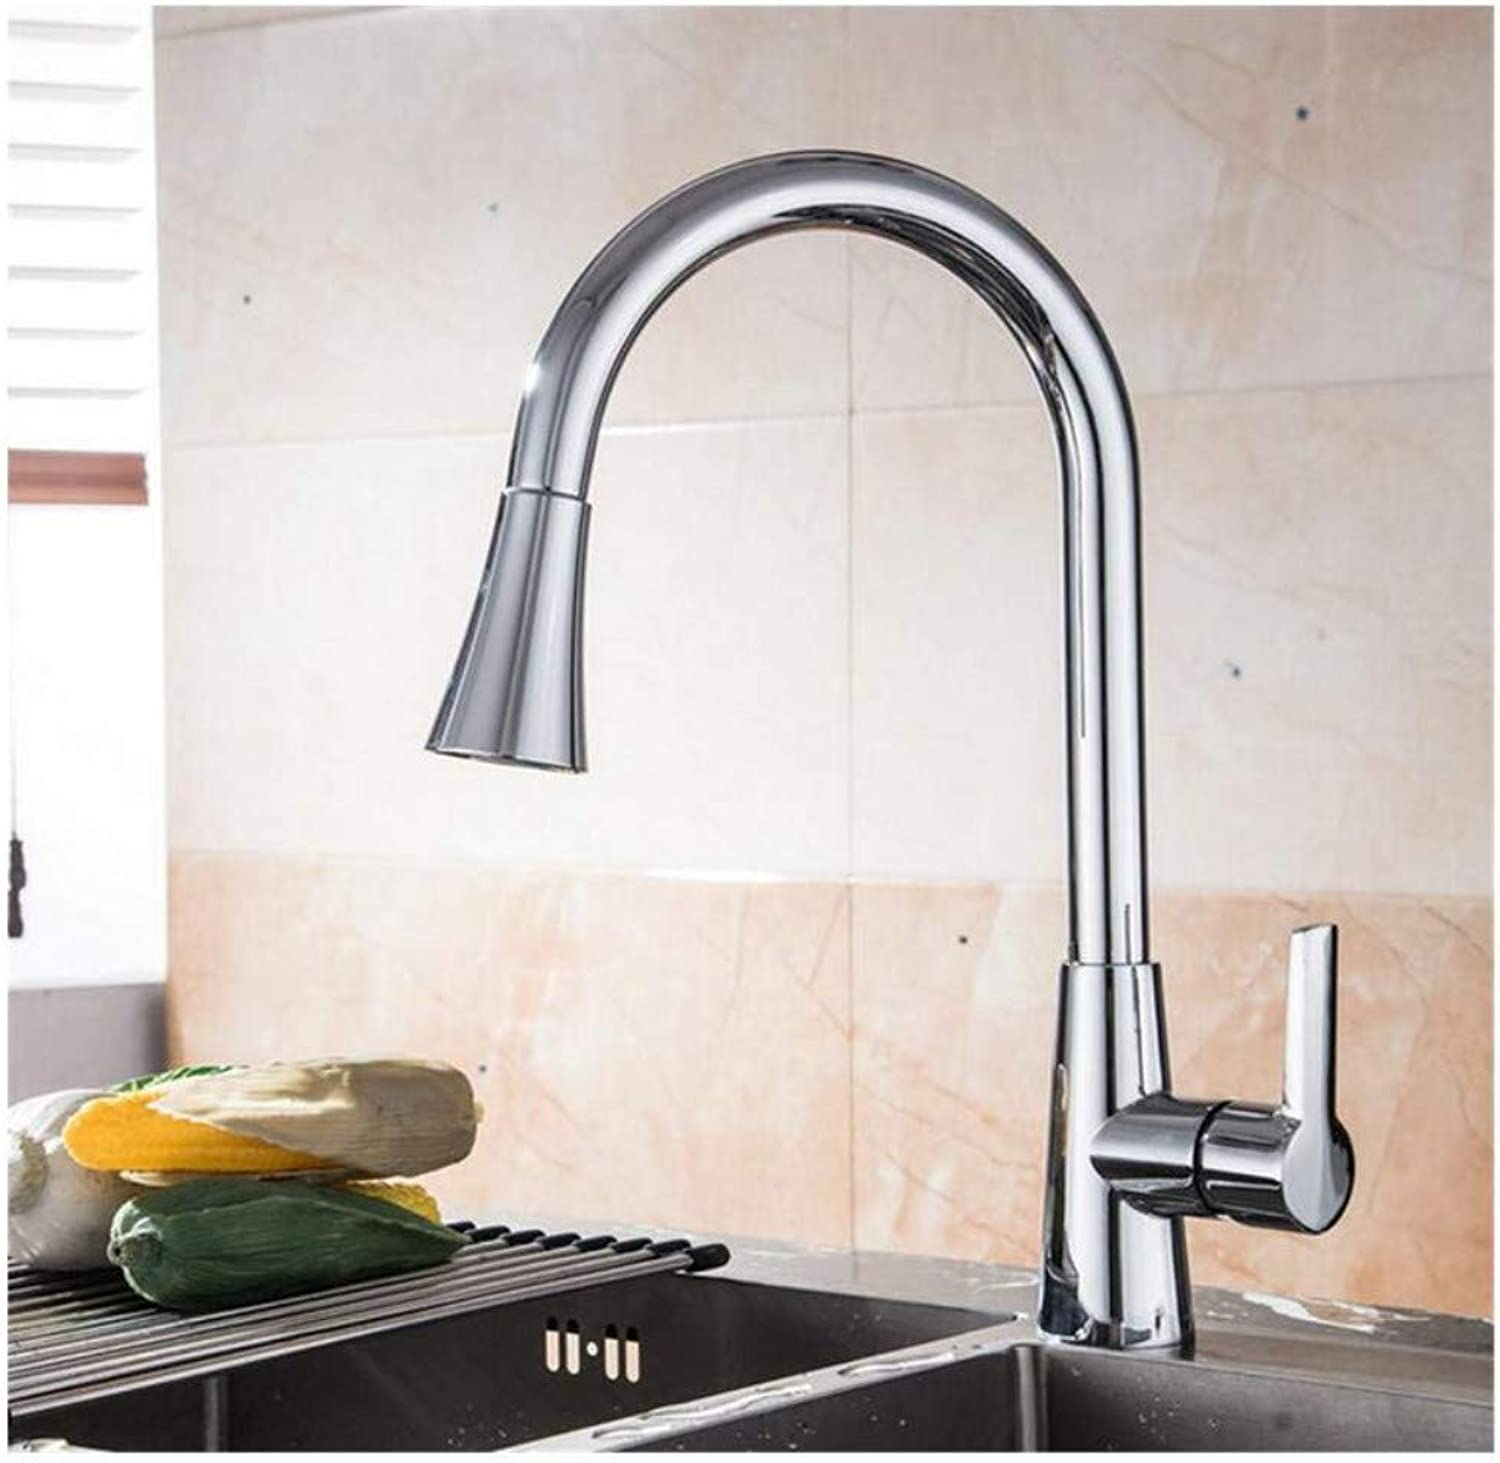 Brass Wall Faucet Chrome Brass Faucethandle Swivel 360 Degree Water Mixer Tap Mixer Tap